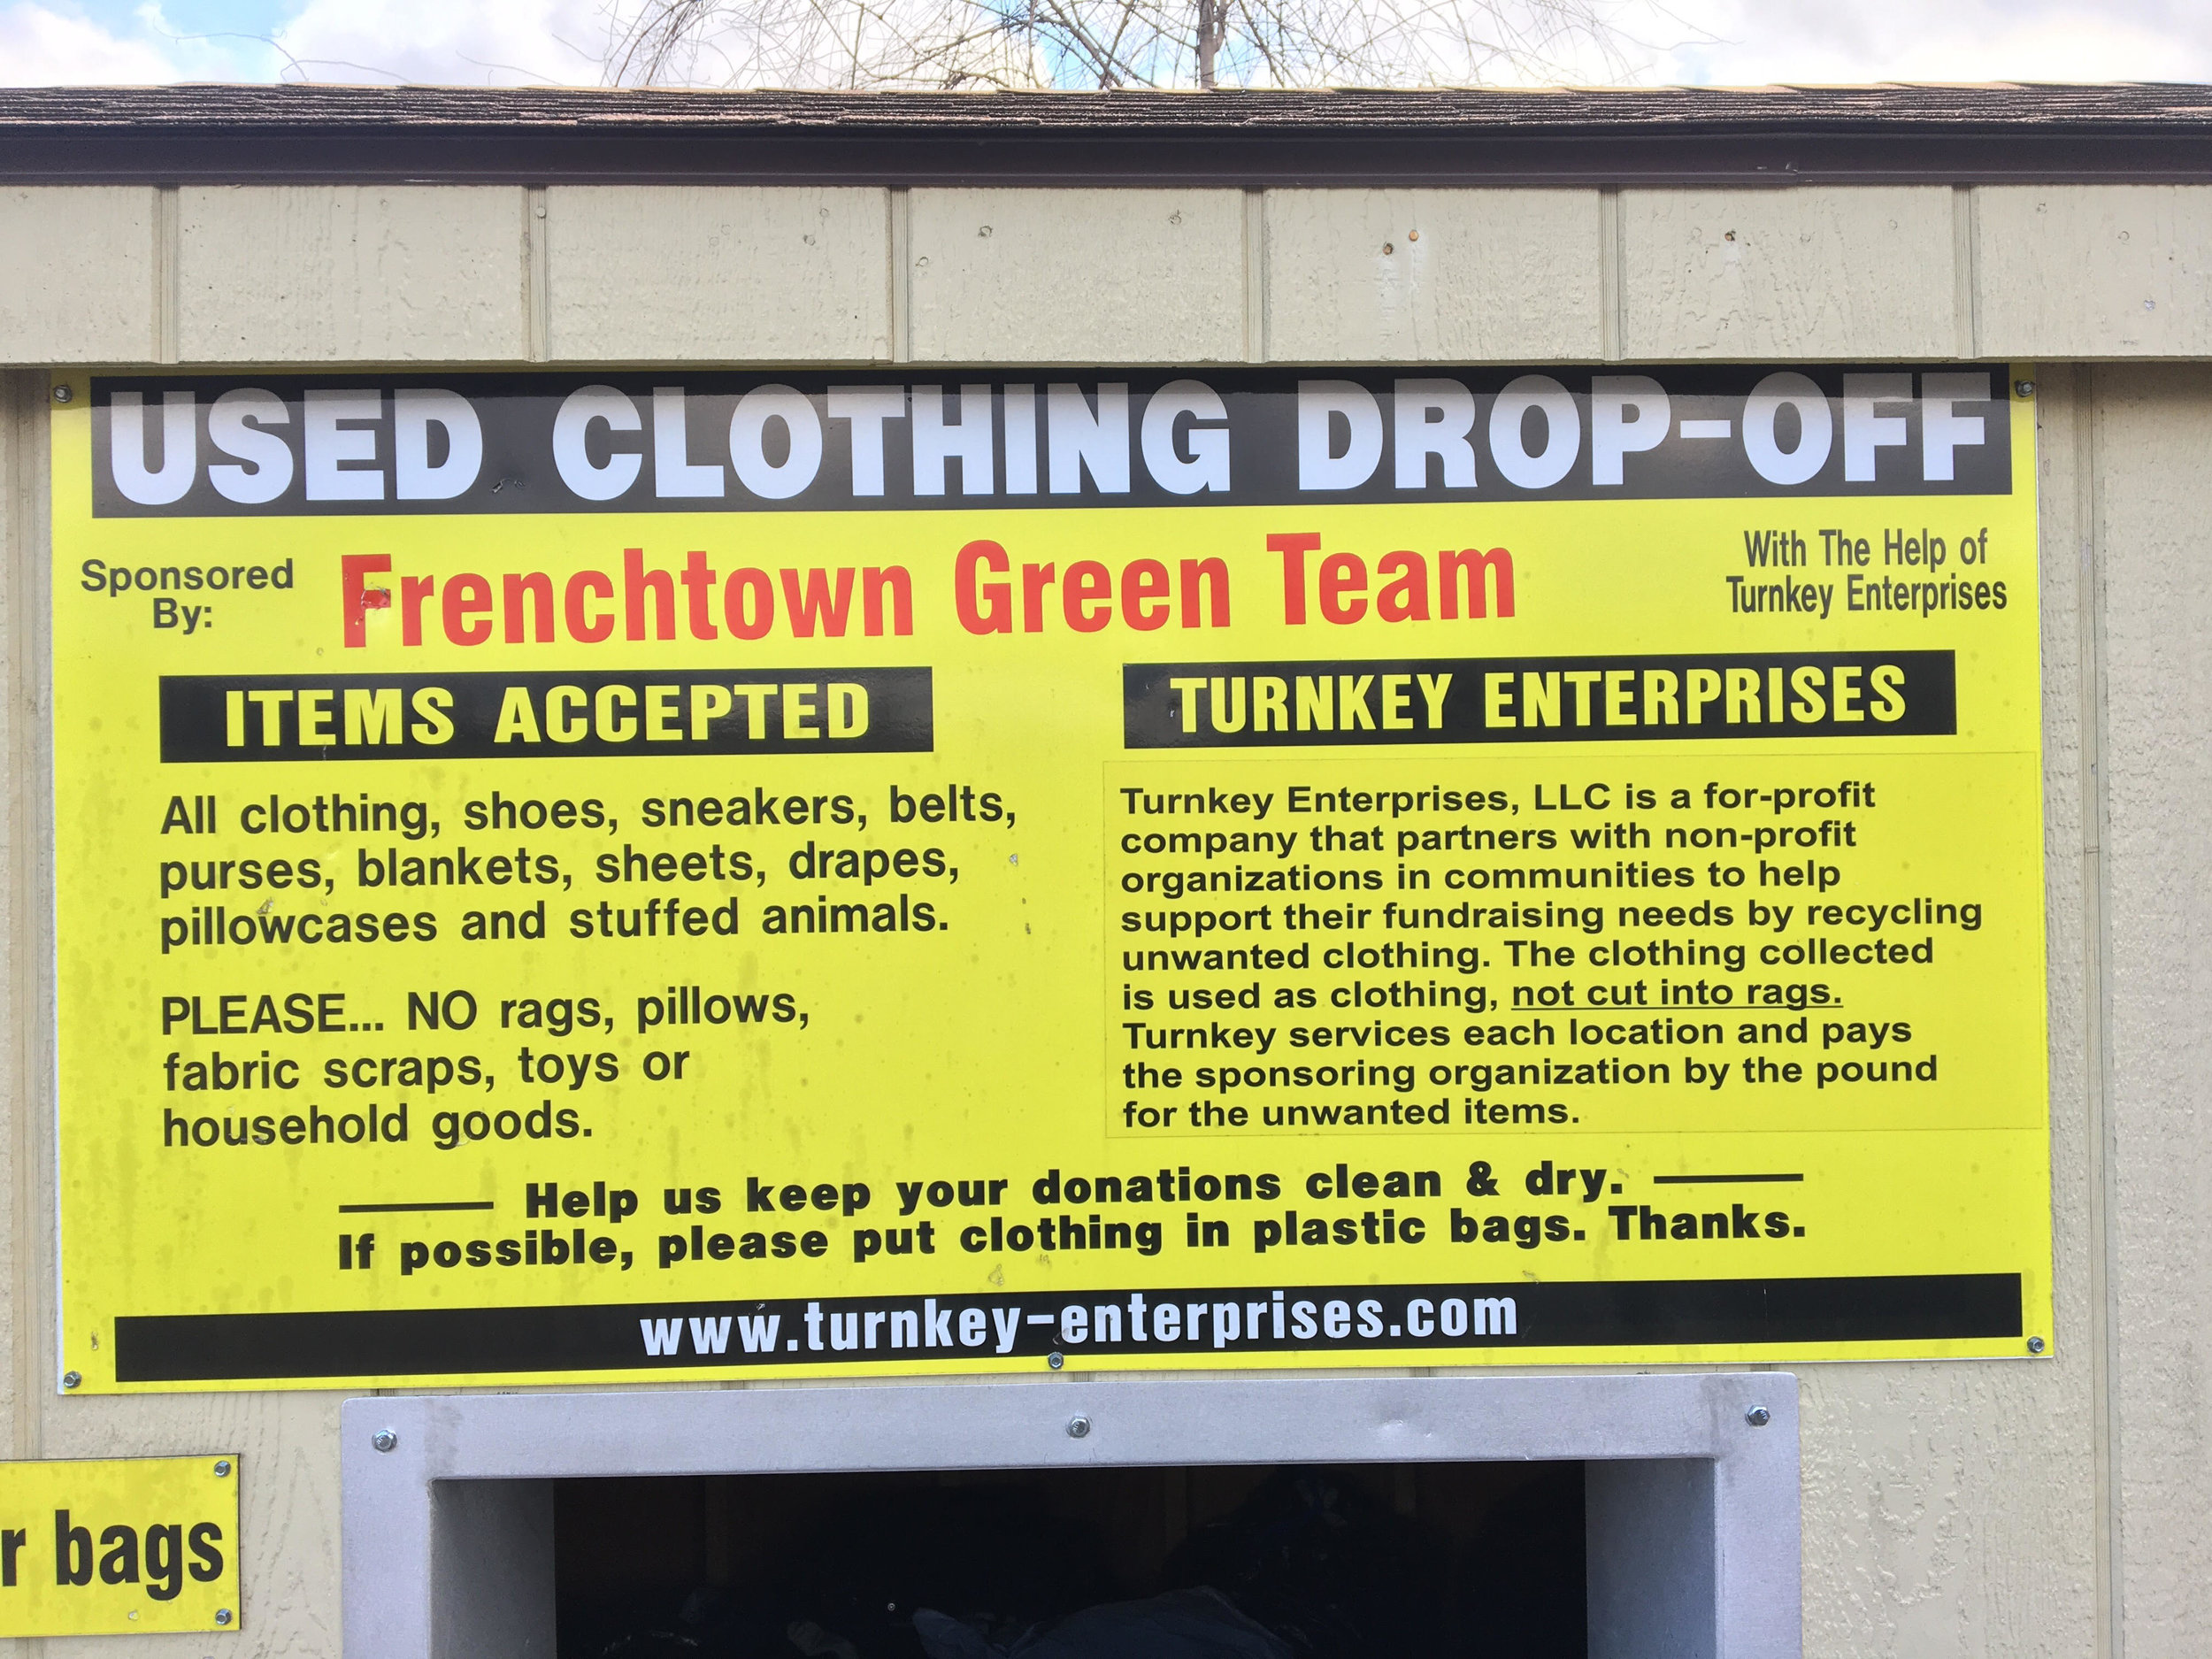 This donation box can be located in the back lot across from the Frenchtown Elementary School  902 Harrison St, Frenchtown, NJ 08825